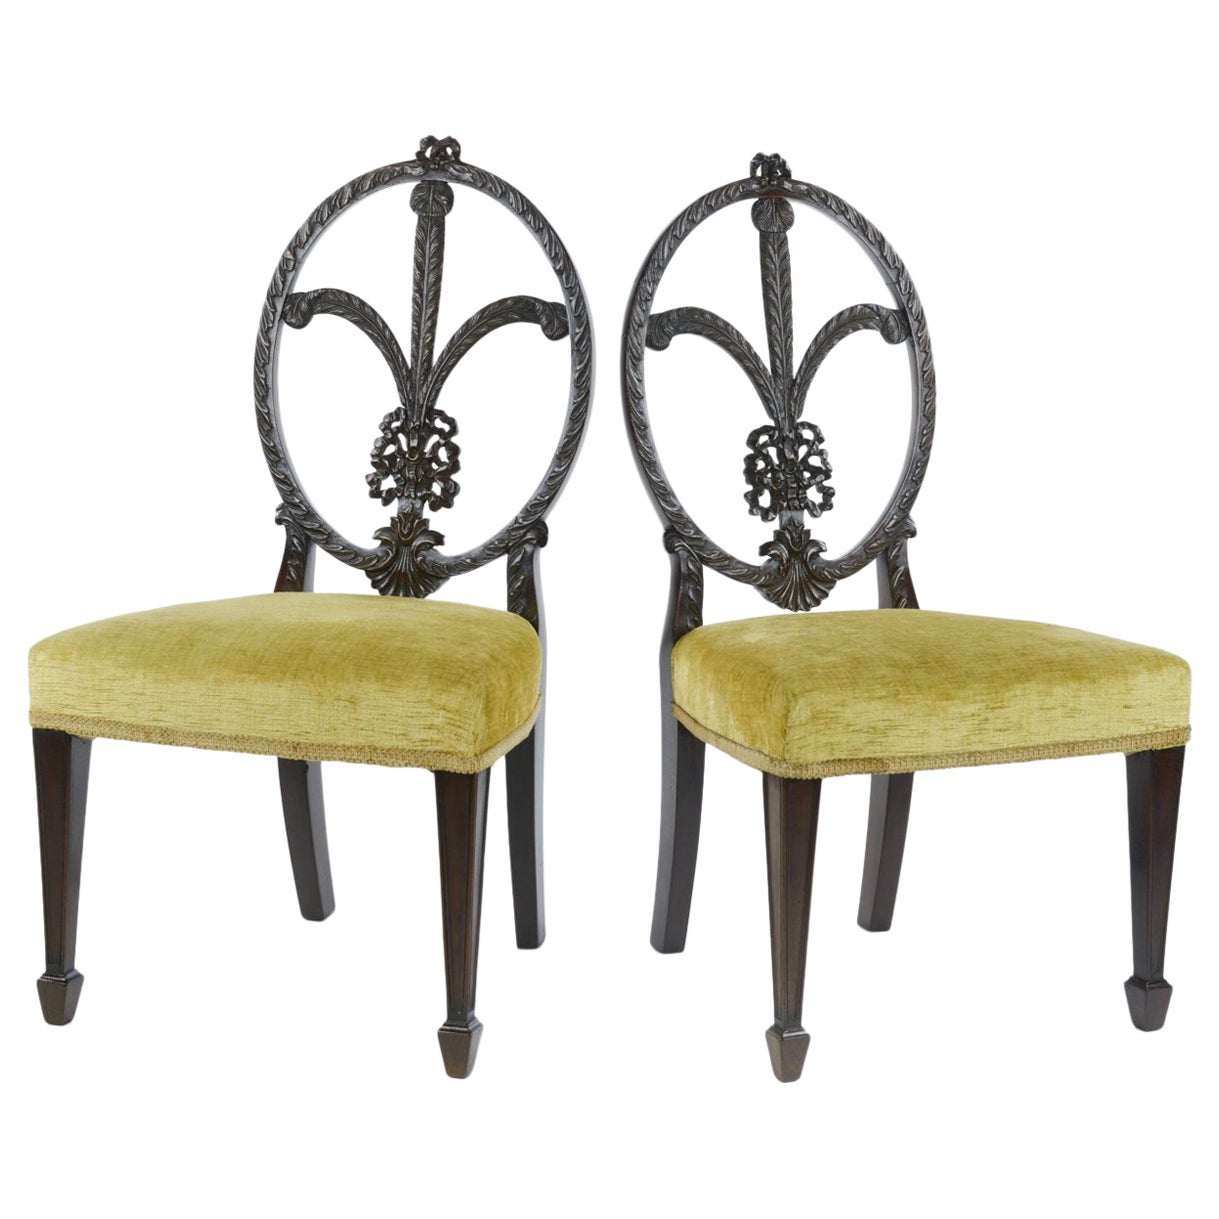 Pair of Sheraton Style Children's Chairs